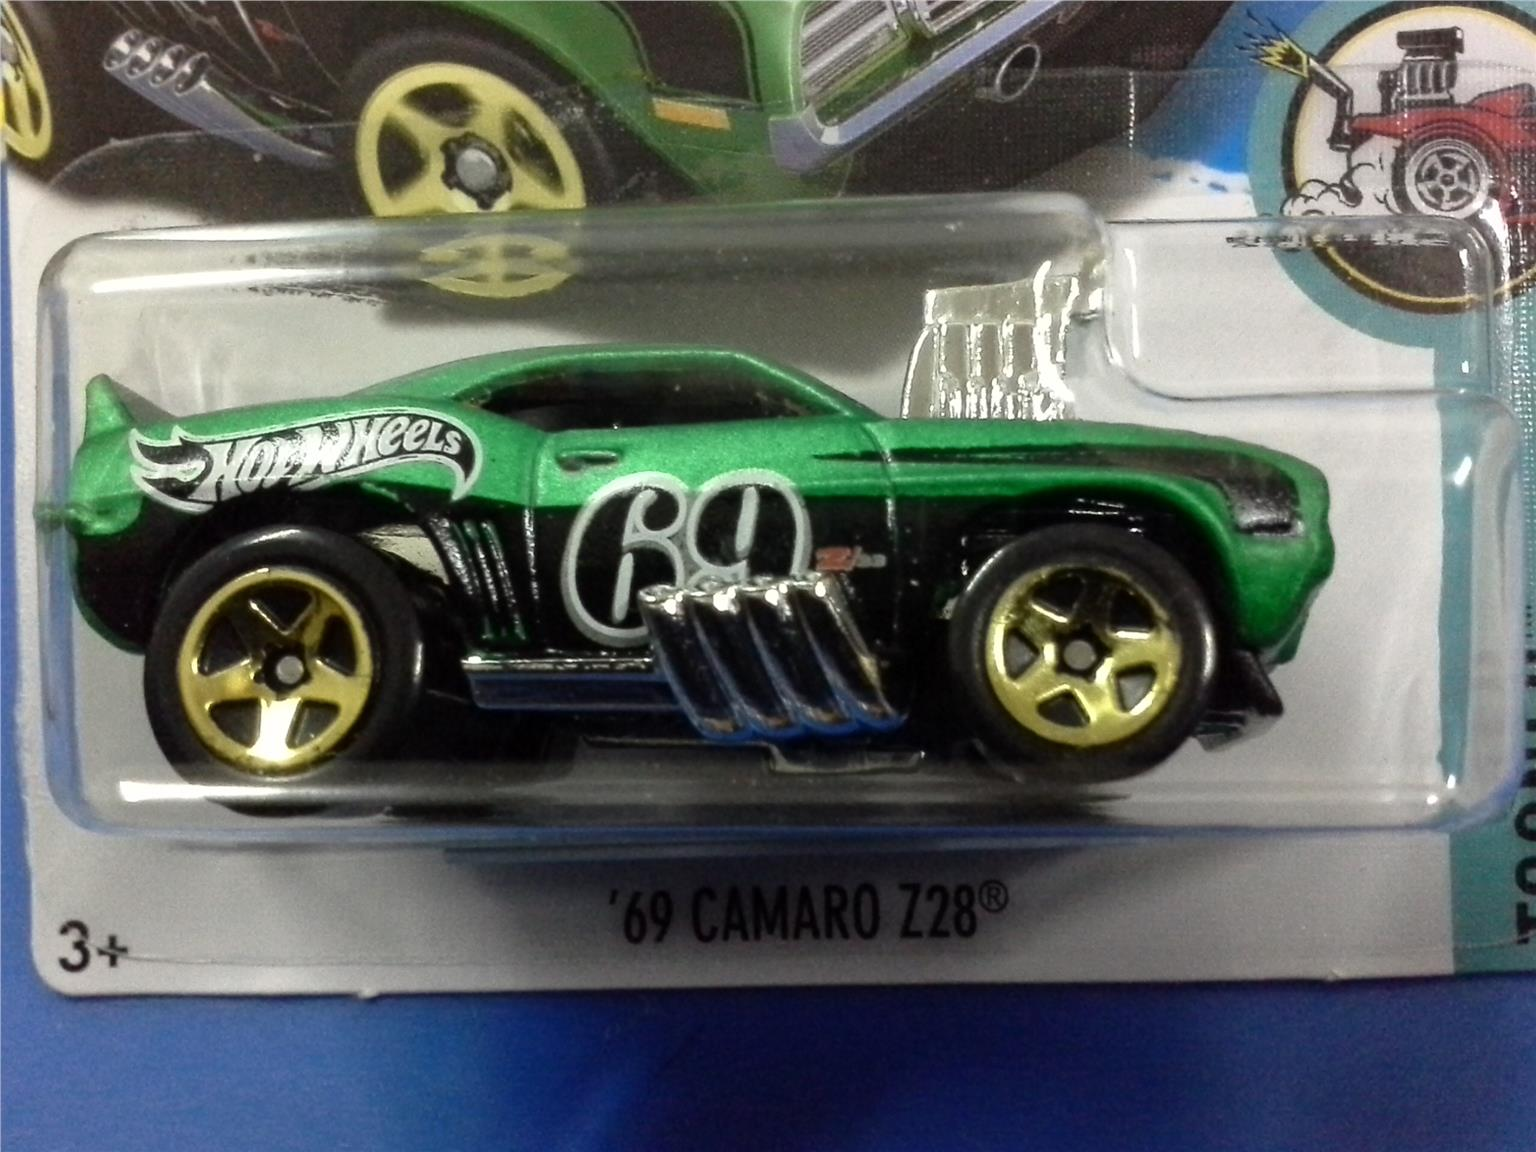 2017 hot wheels 69 camaro z28 green h end 4 2 2018 5 15 pm. Black Bedroom Furniture Sets. Home Design Ideas